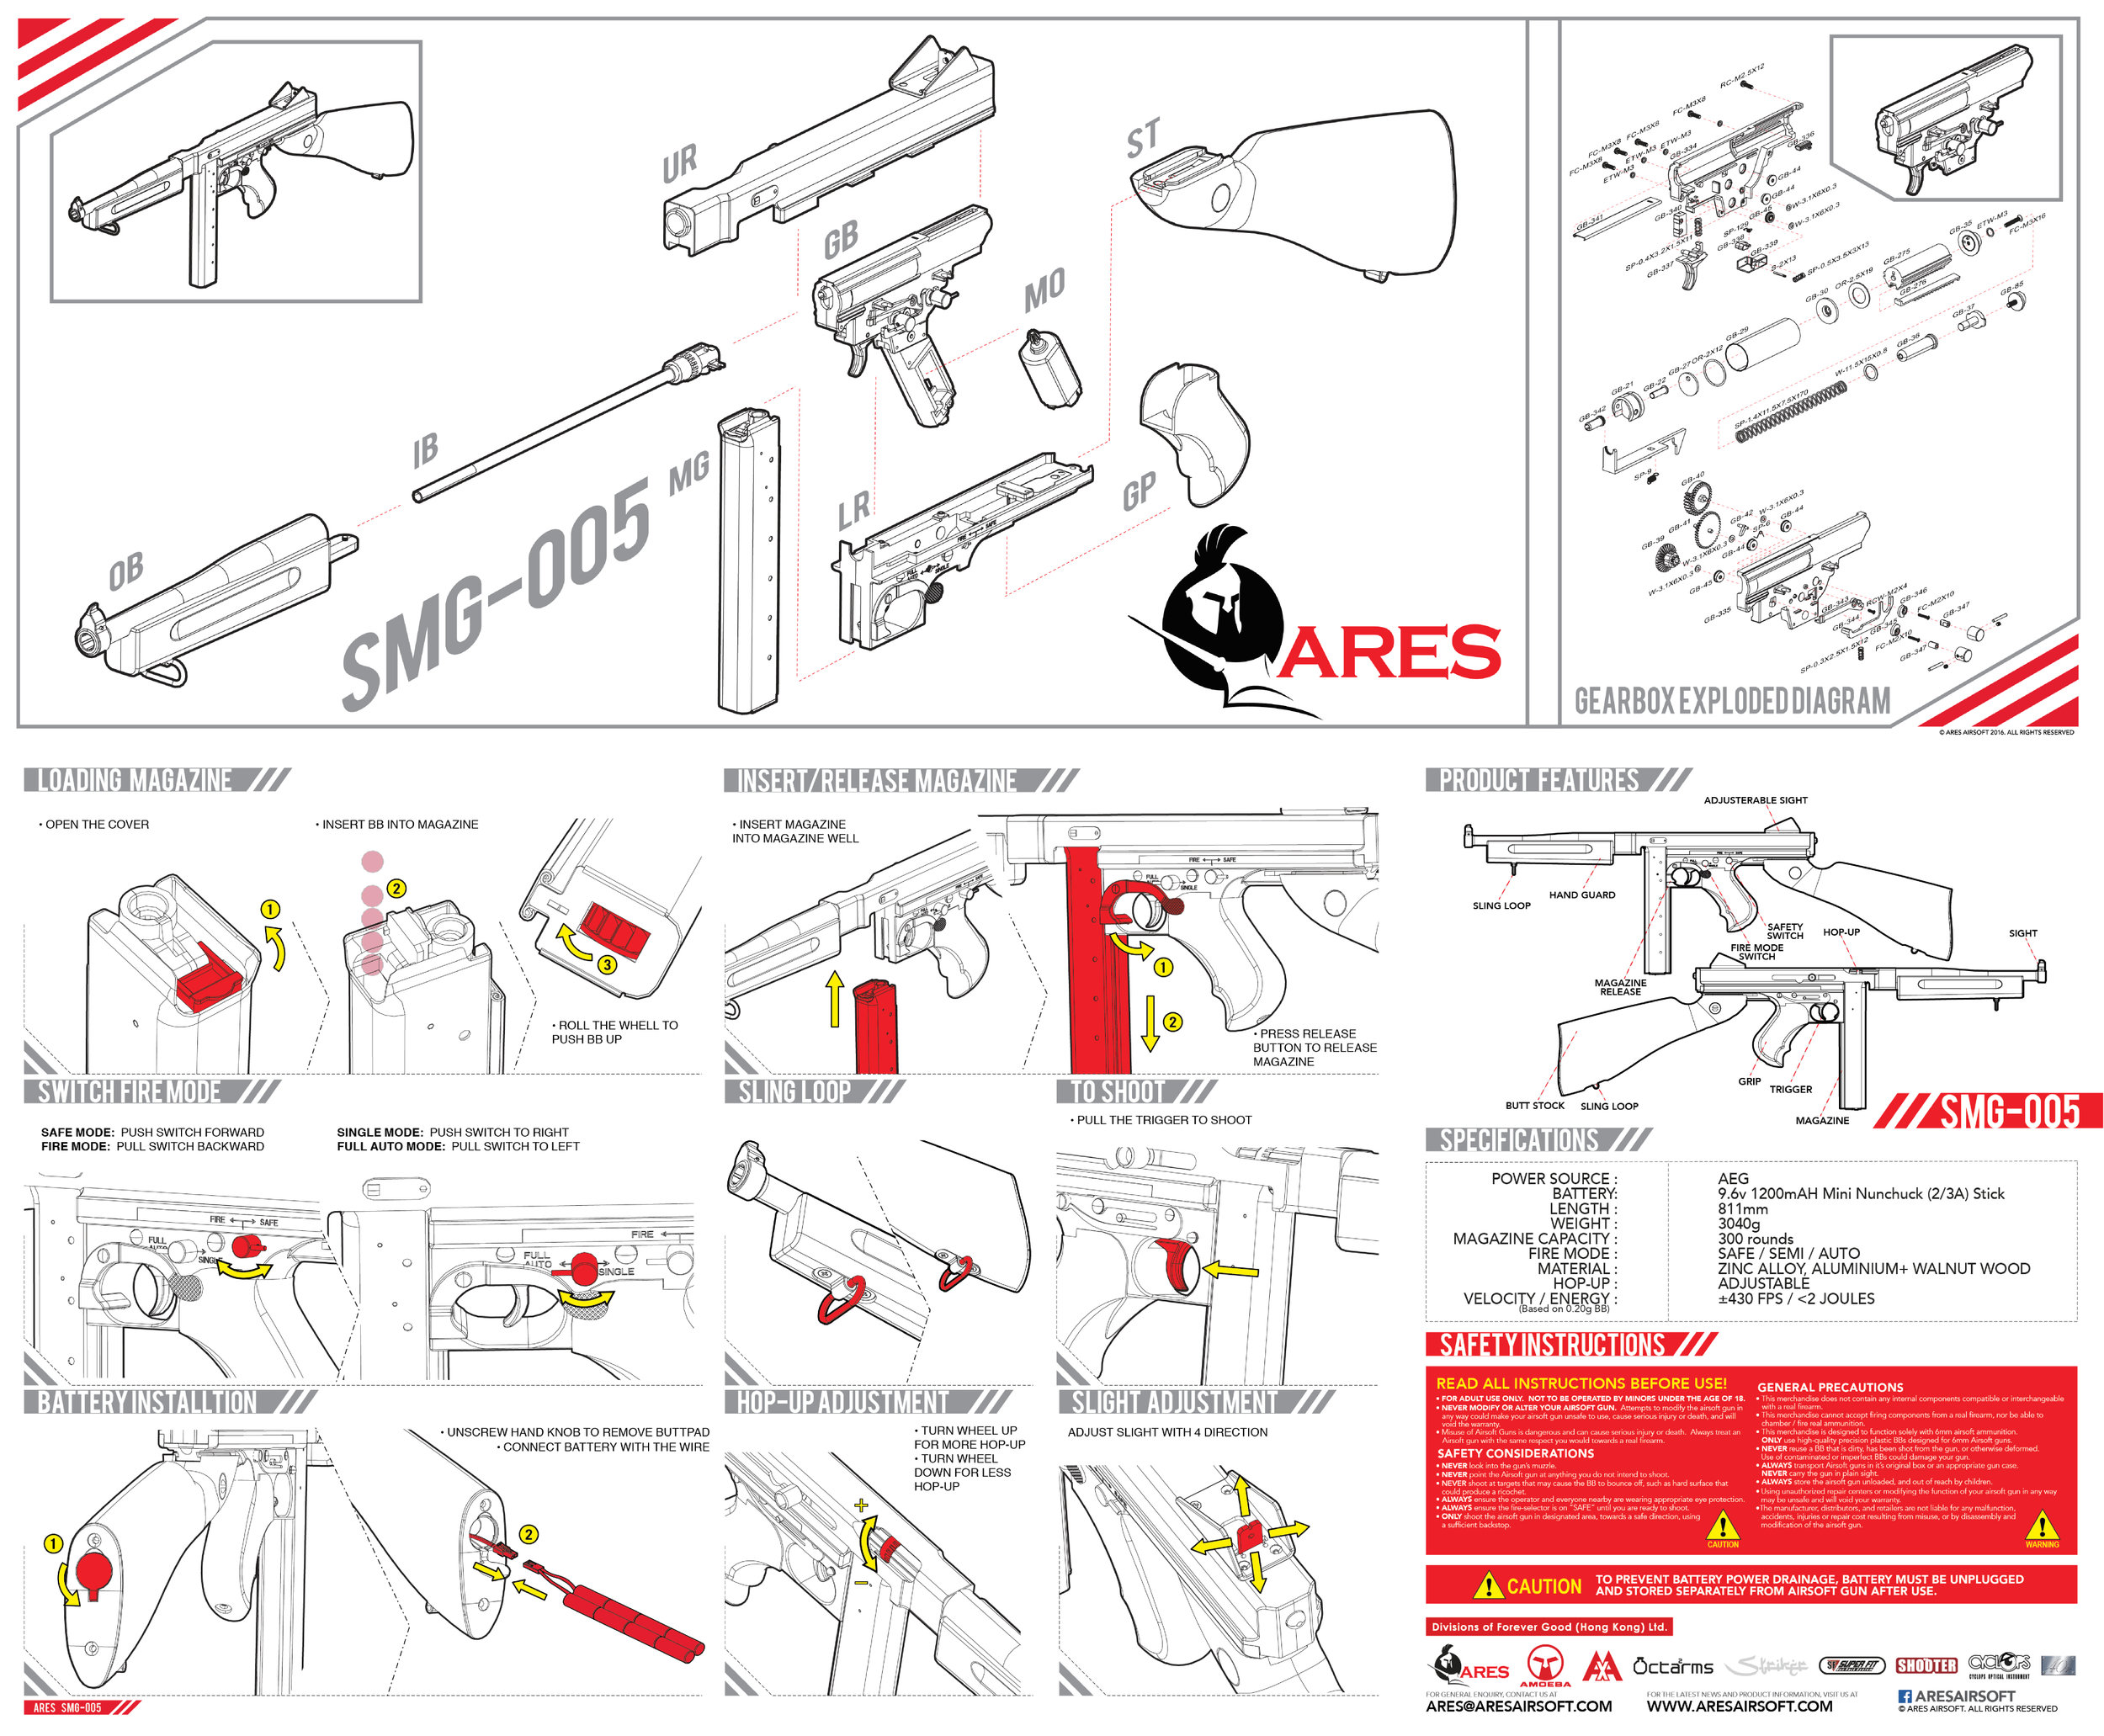 SMG-005-instruction-manual-FULL.jpg